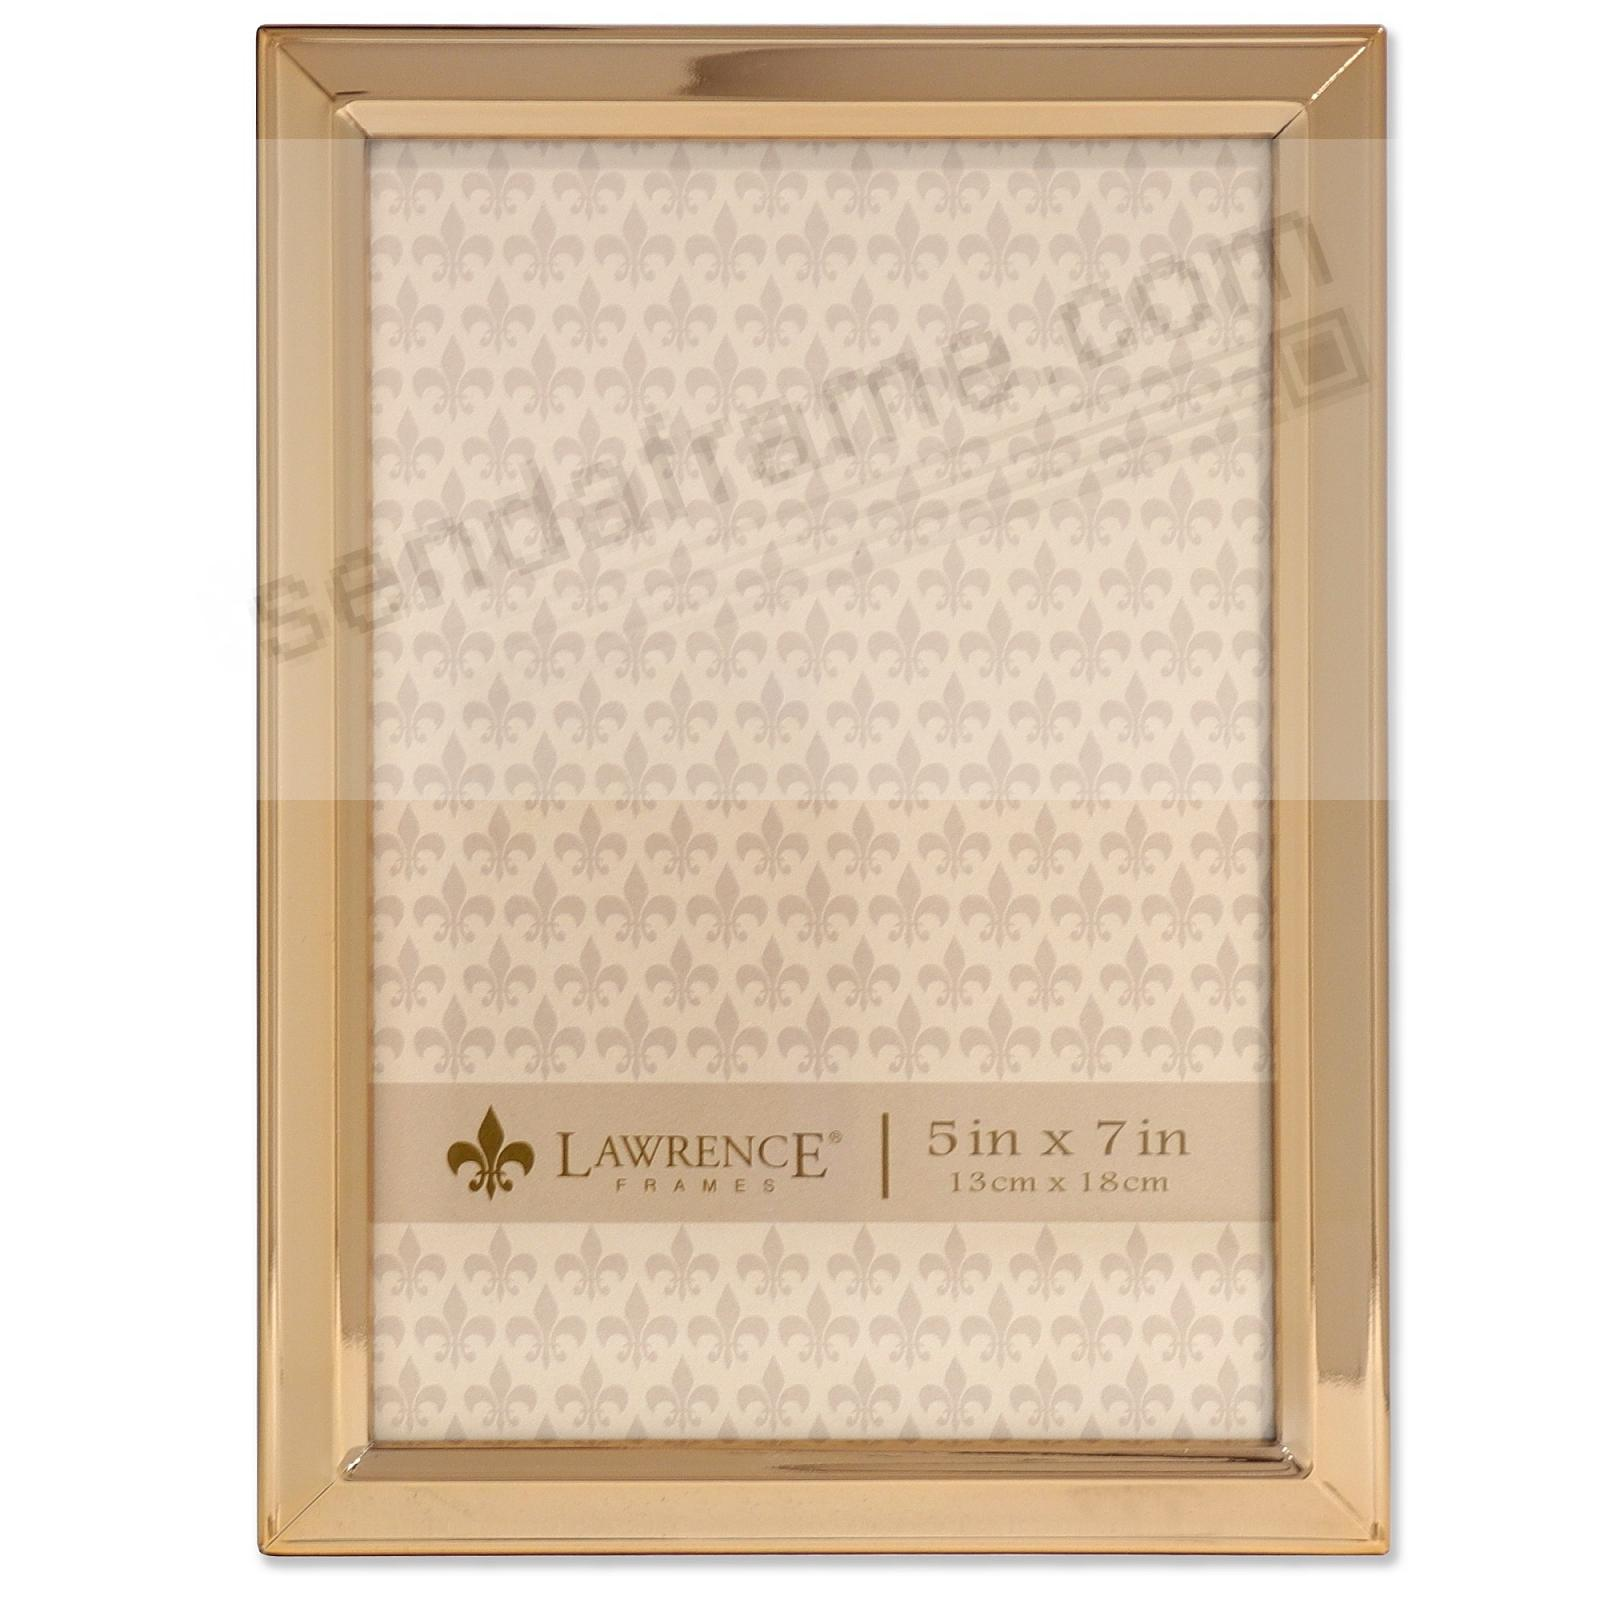 Bevelled Border Gold finish 5x7 frame by Lawrence®